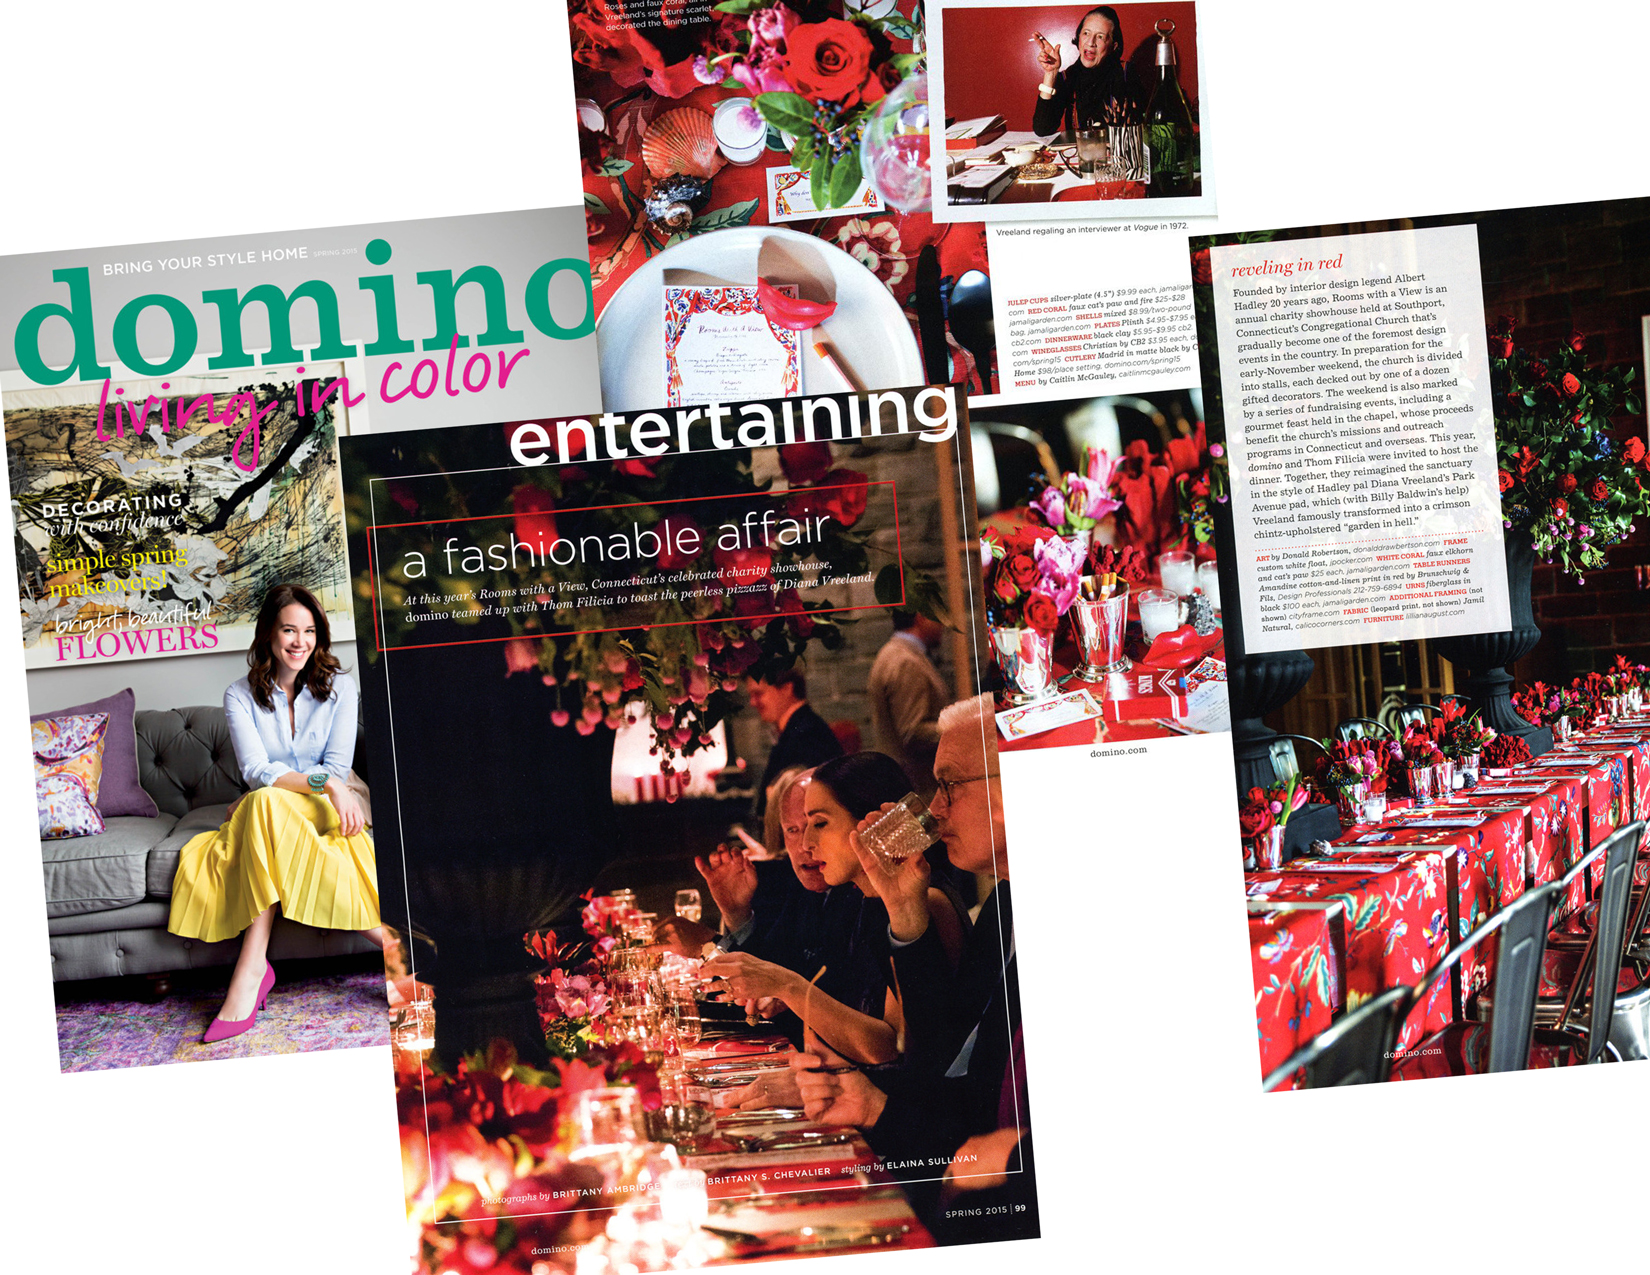 Media Relations - At POPcreative we concentrate on forging brand narratives that resonate with our client's core audience. We work closely with editors and influencers to develop unique, high-resonating social media content, brand partnerships, and press placements in order to promote brand visibility, message amplification, and sales.